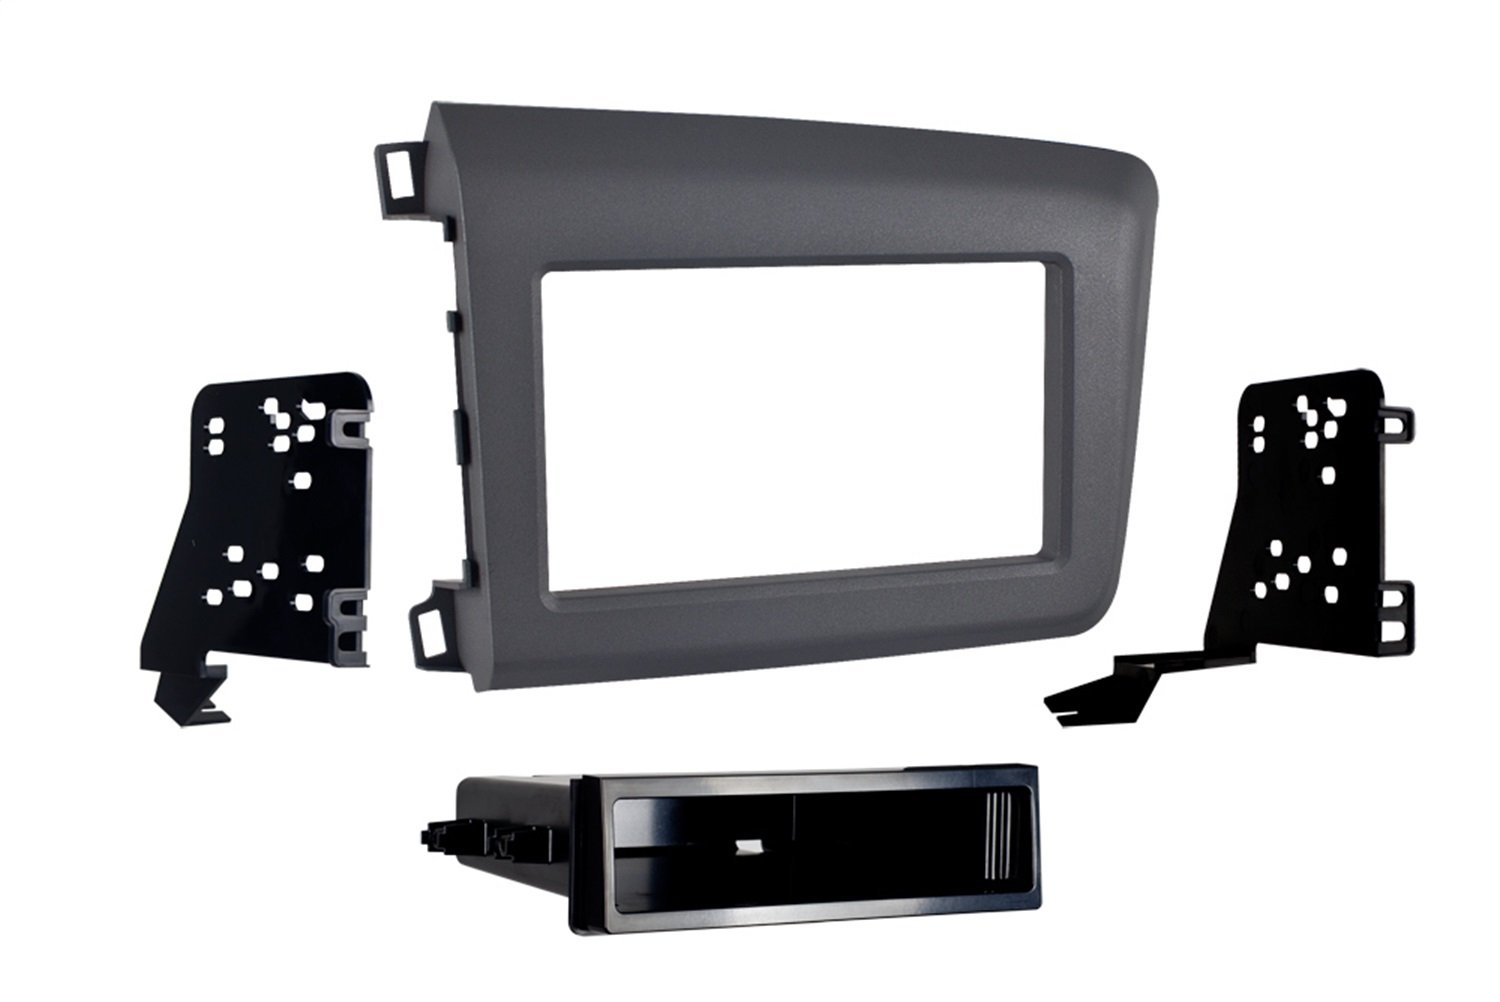 Metra 99-7881G Single DIN In-Dash Installation Kit for 2012 Honda Civics